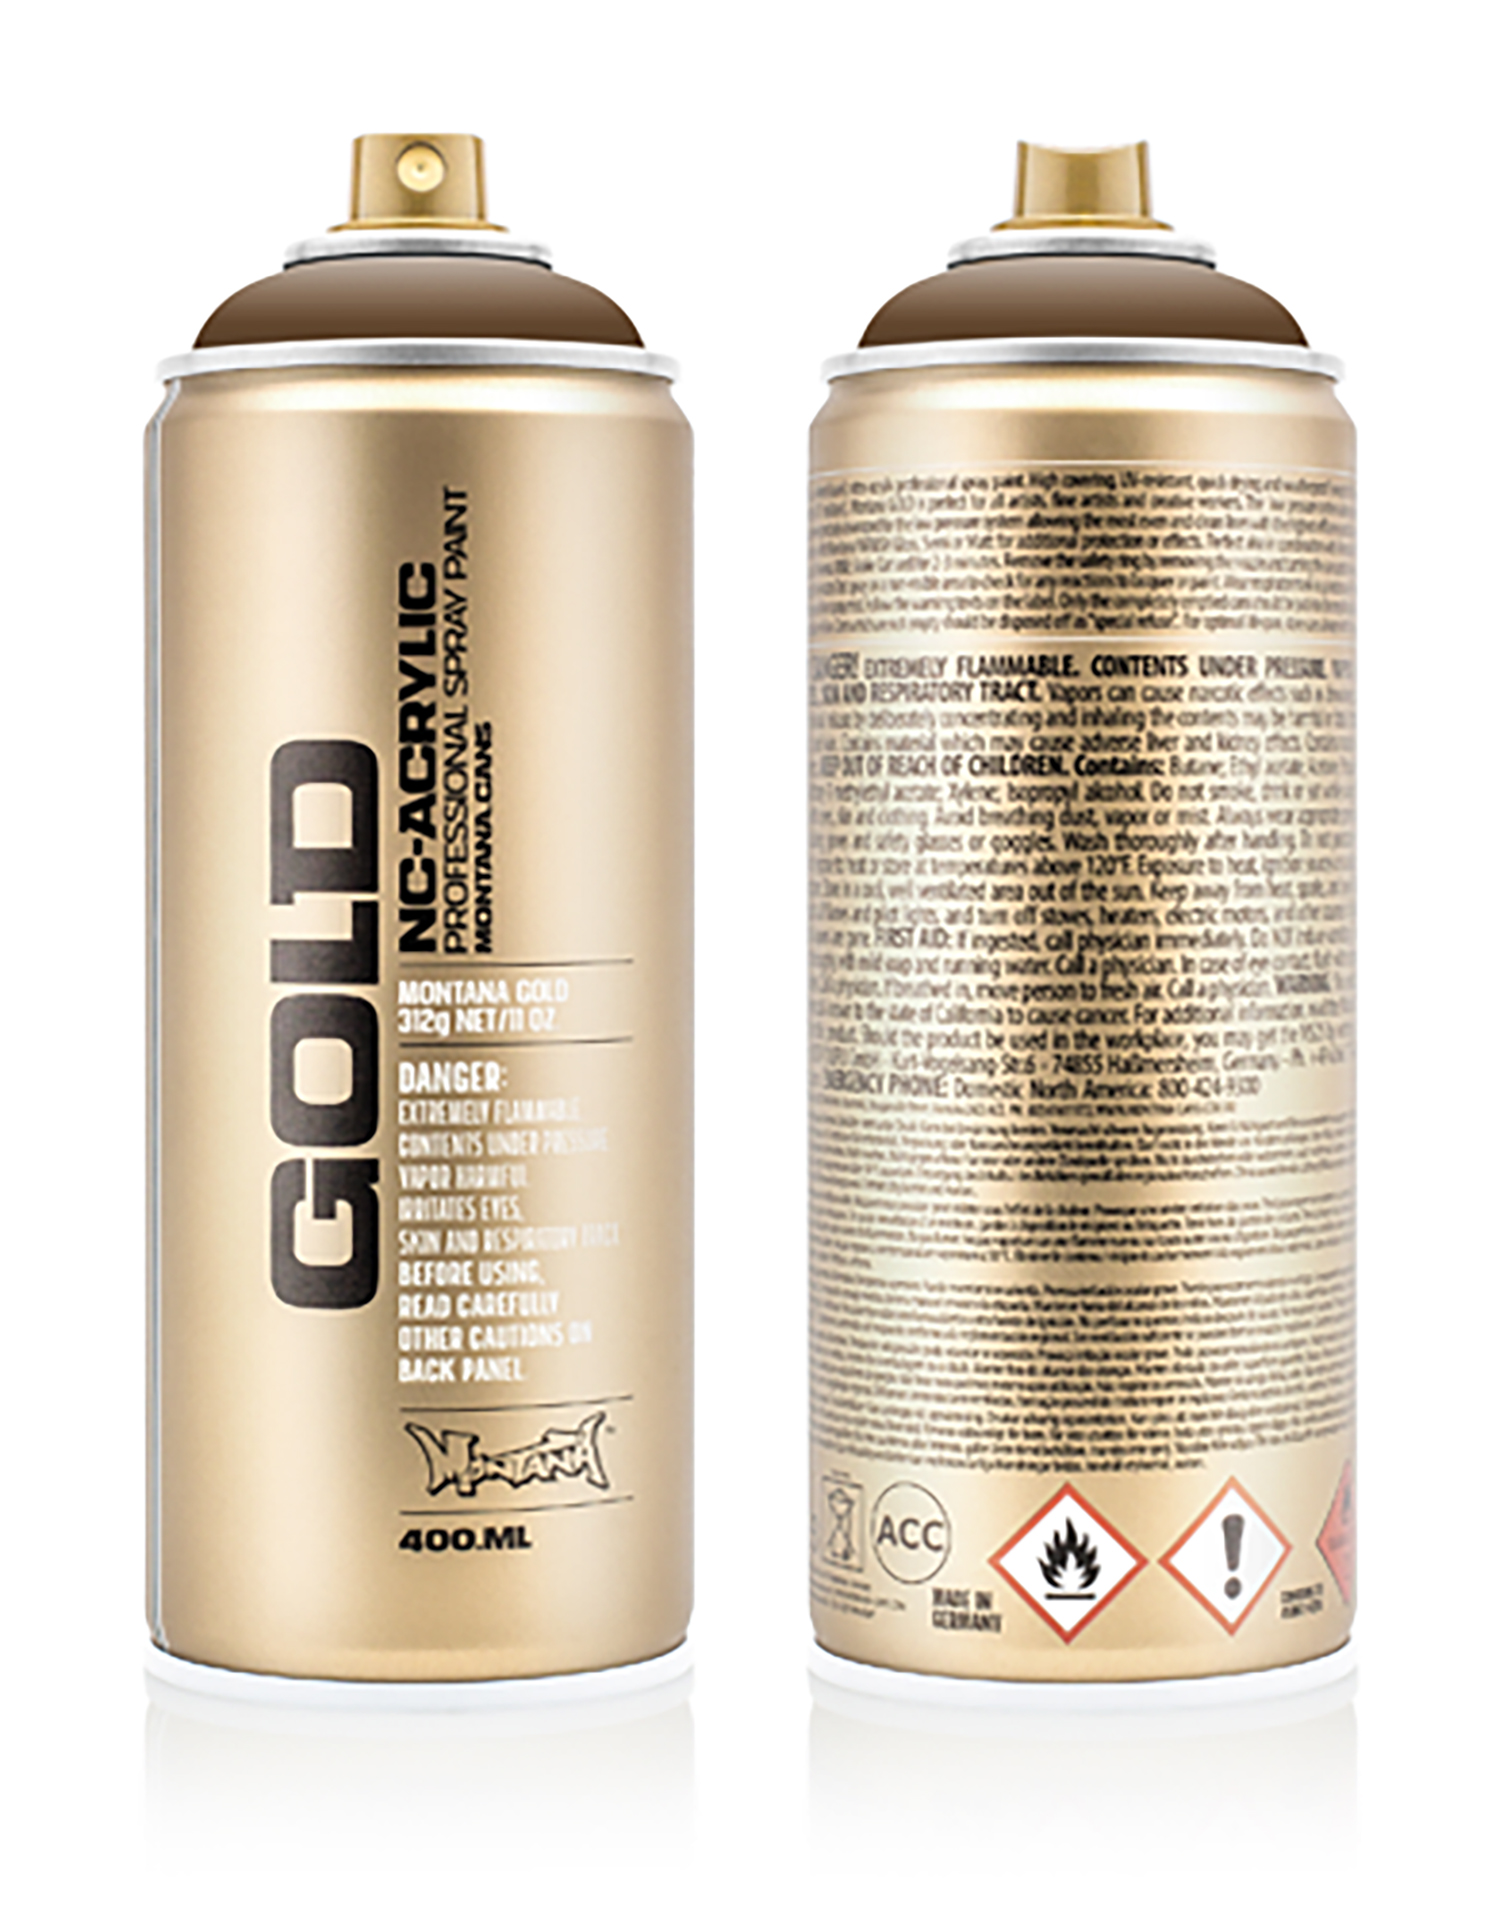 MONTANA-GOLD-SPRAY-400ML-G-1470